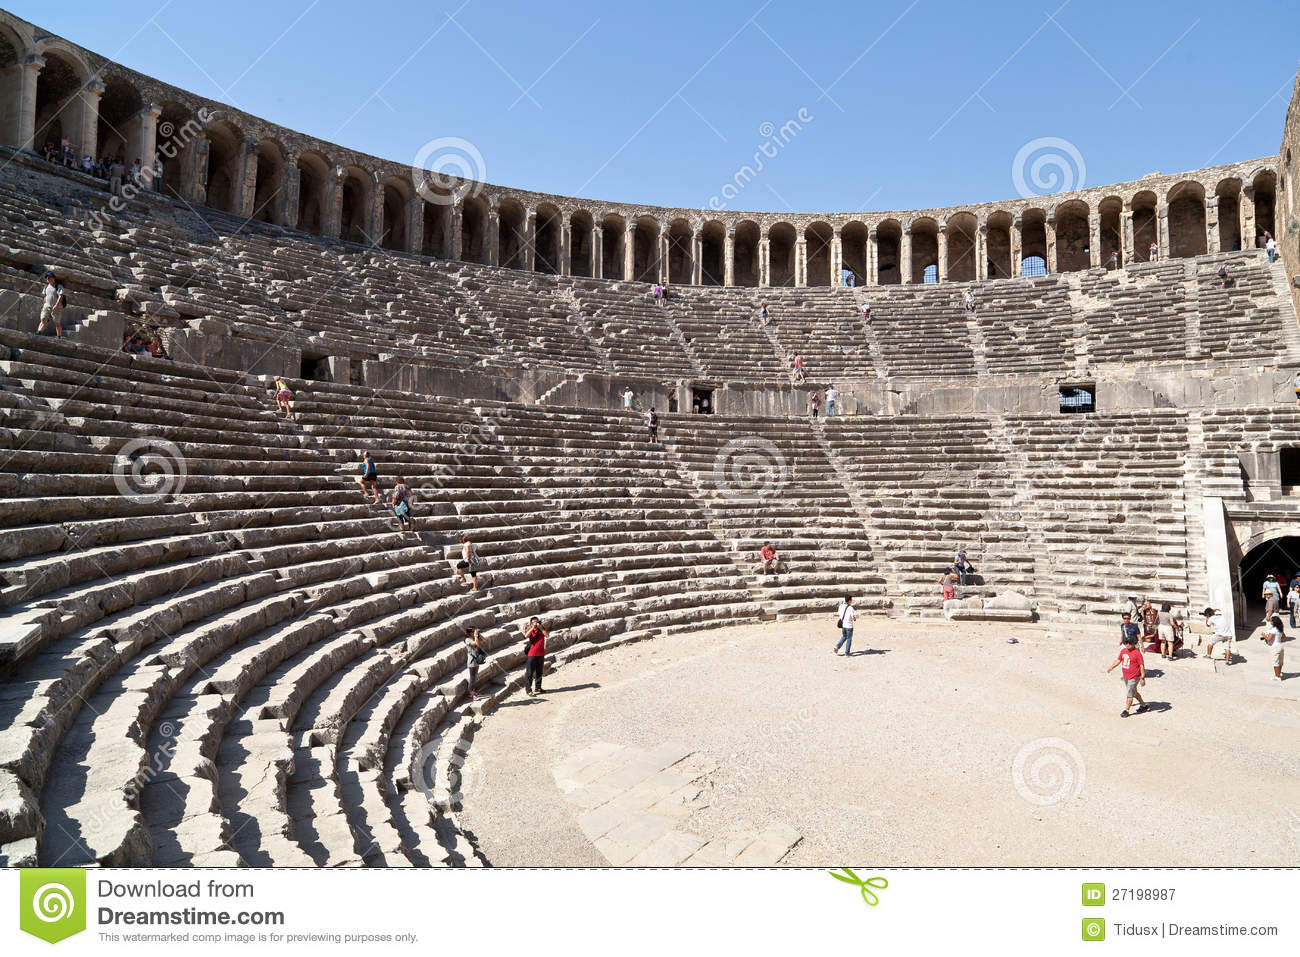 Beside pumkkale there is an ancient roman theatre the consturction